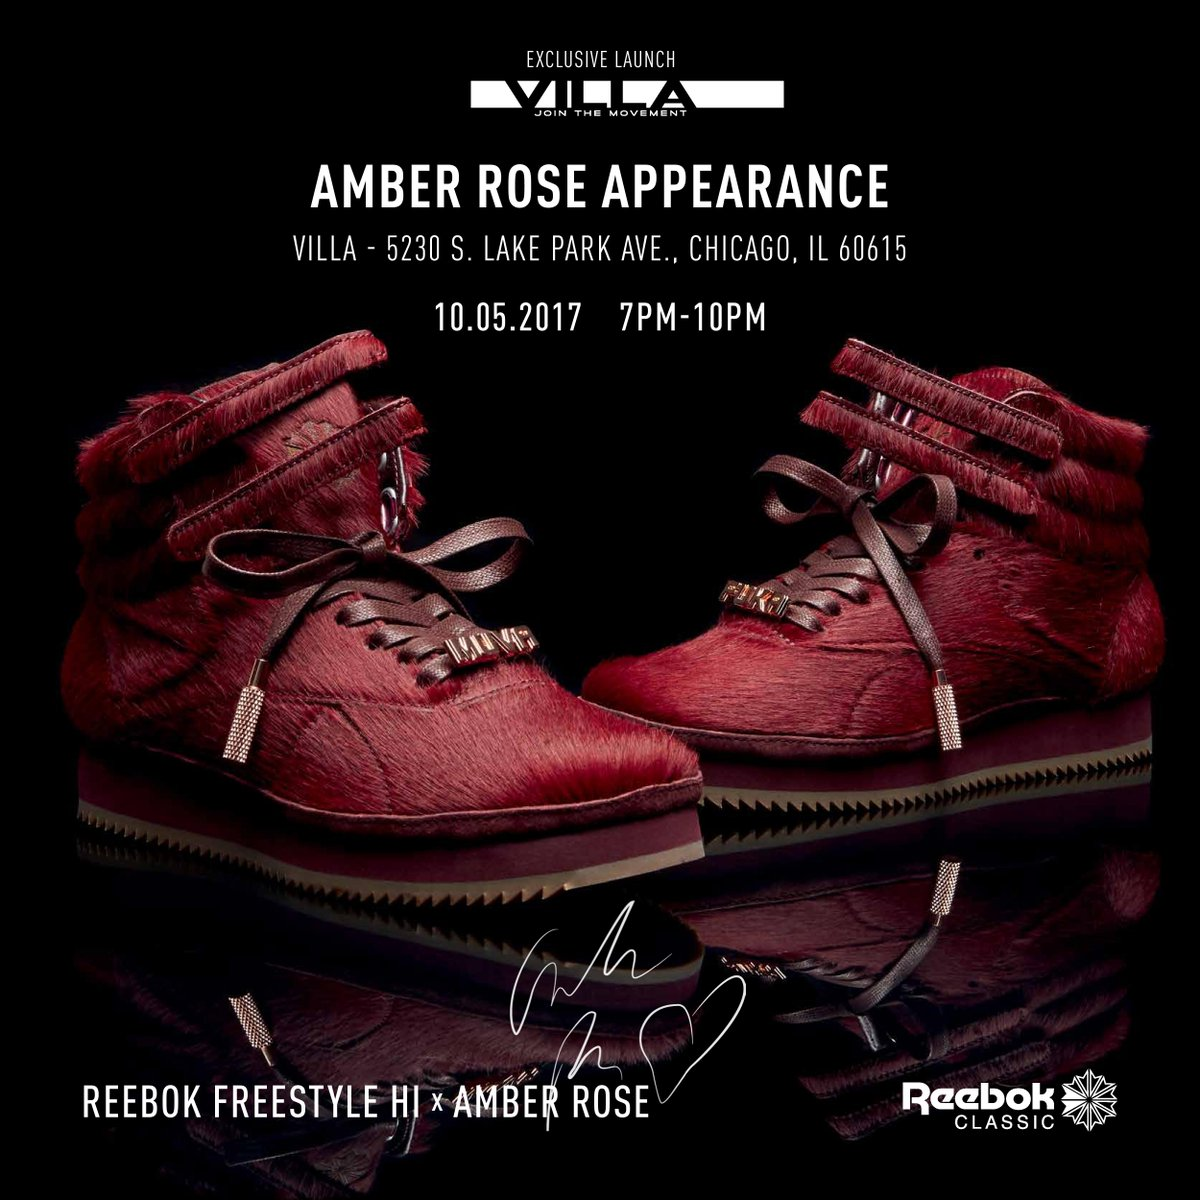 Chicago - Thursday 10.5.17  AmberRose Exclusive Reebok Freestyle Hi  release with a special in-store appearance activation   villa hydepark.pic.twitter.com  ... cfd863d38